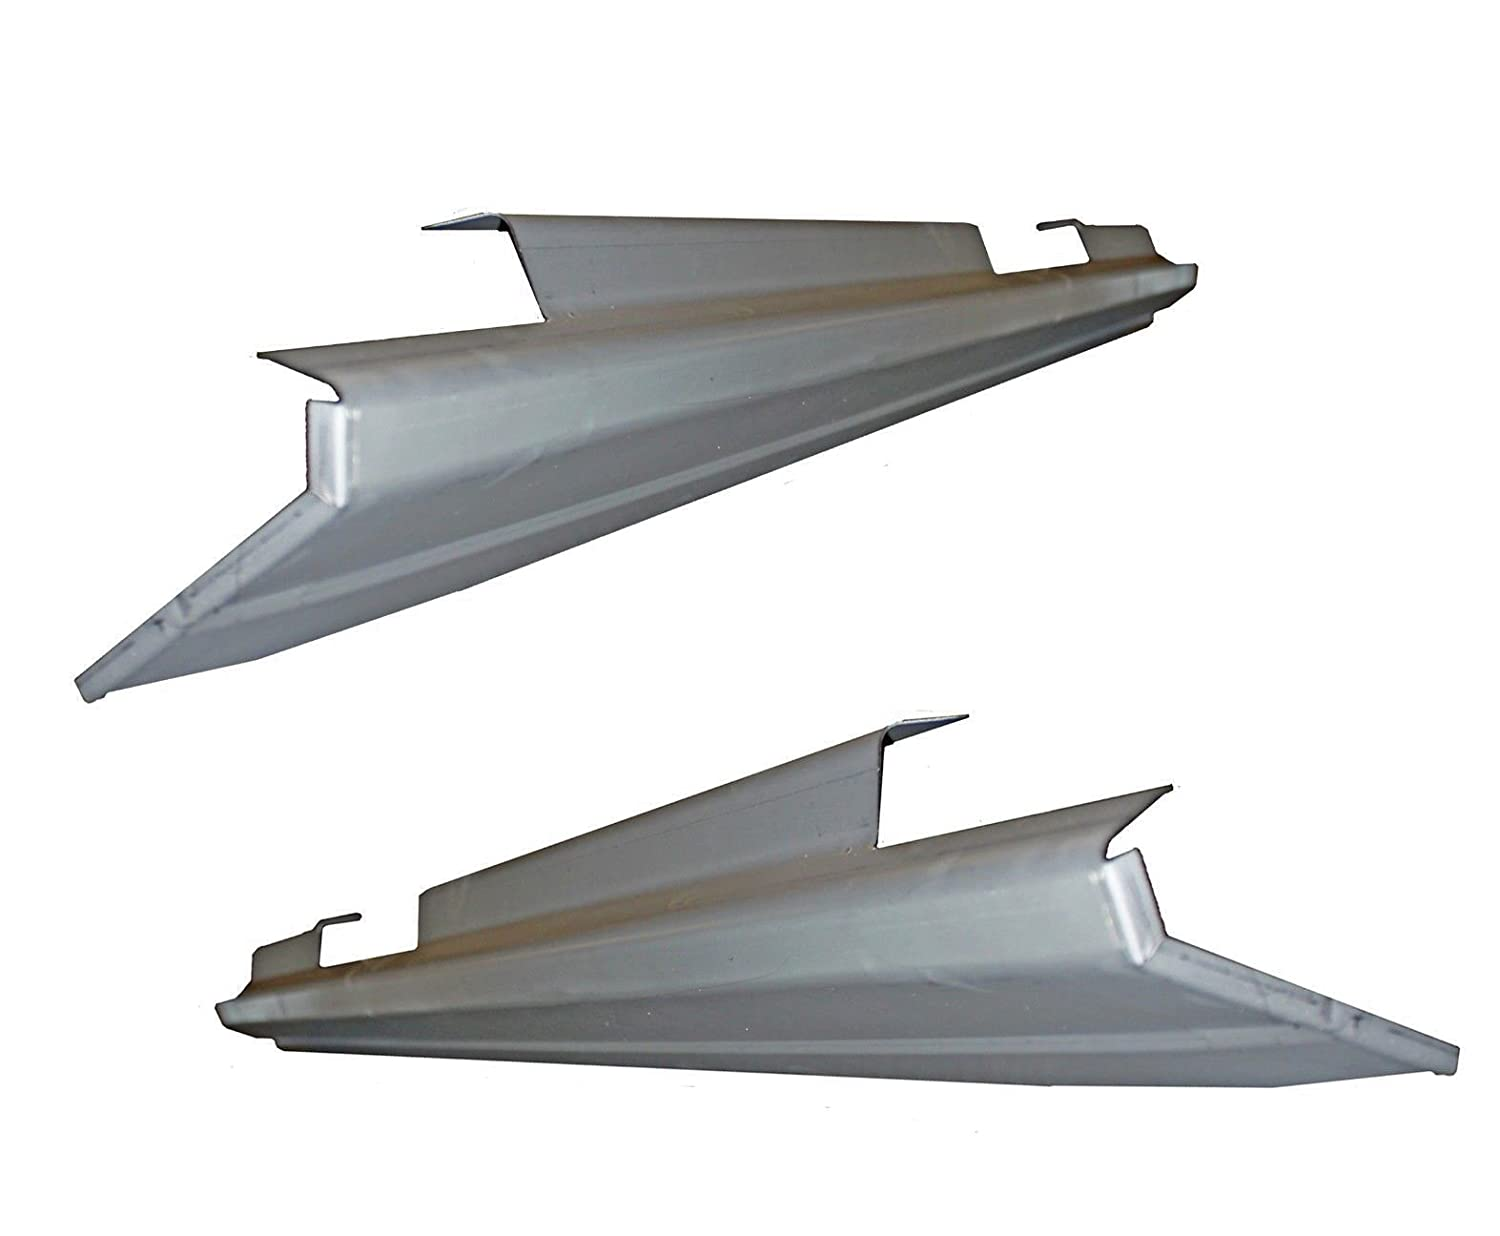 Motor City Sheet Metal - Works With 1999-2007 CHEVY SILVERADO SUBURBAN CREW CAB ROCKER PANELS - 1 PAIR